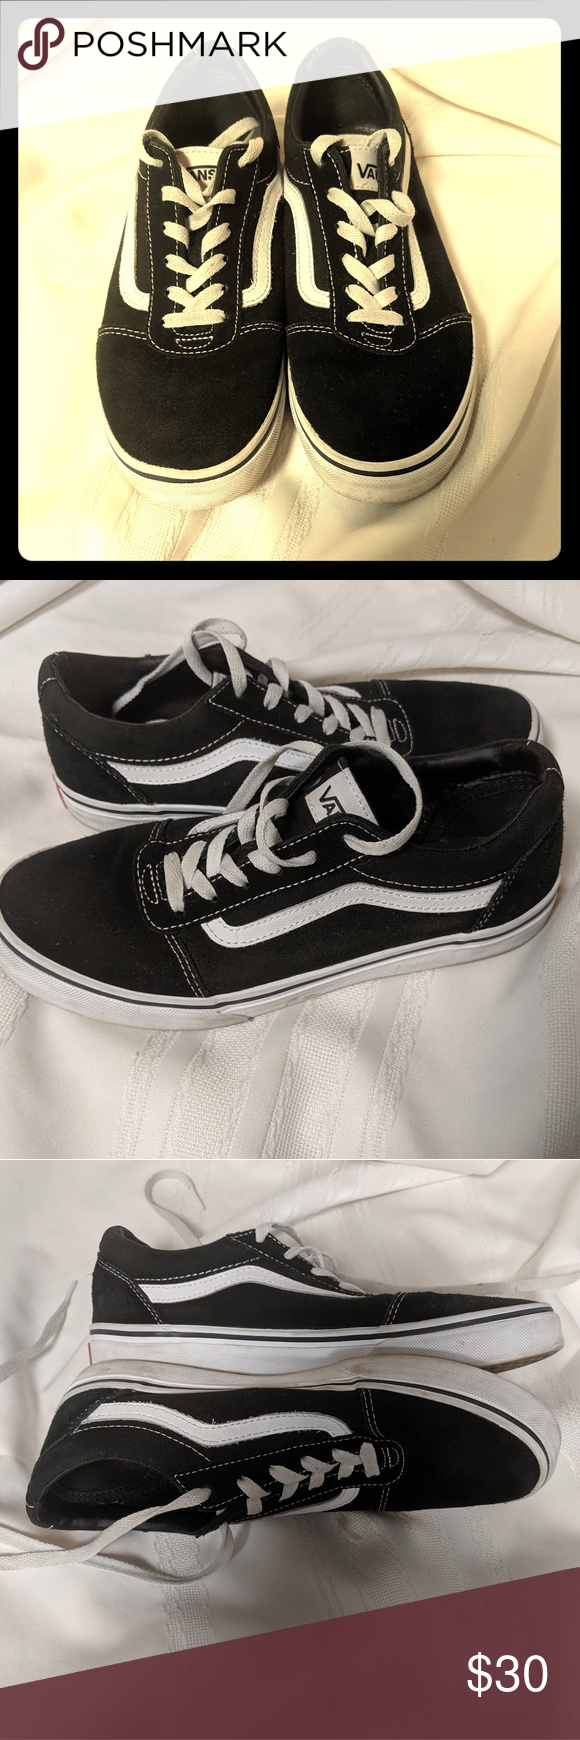 vans size 6 youth